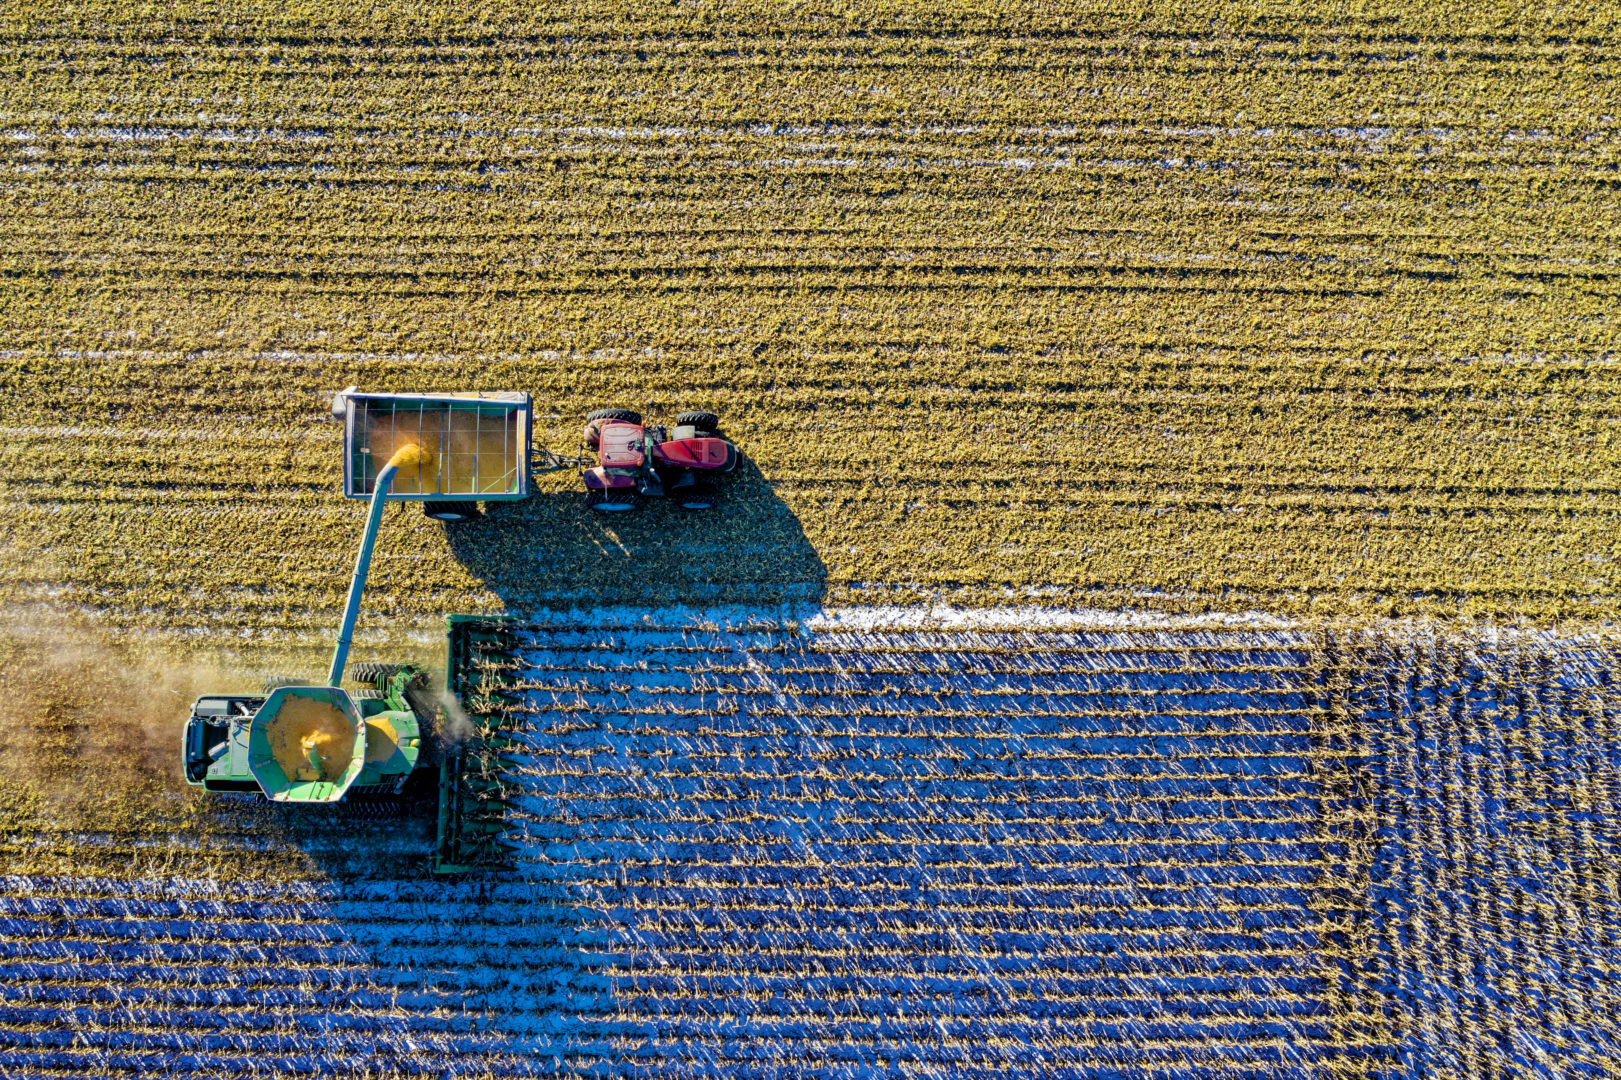 birds eye view of combine and tractor in field